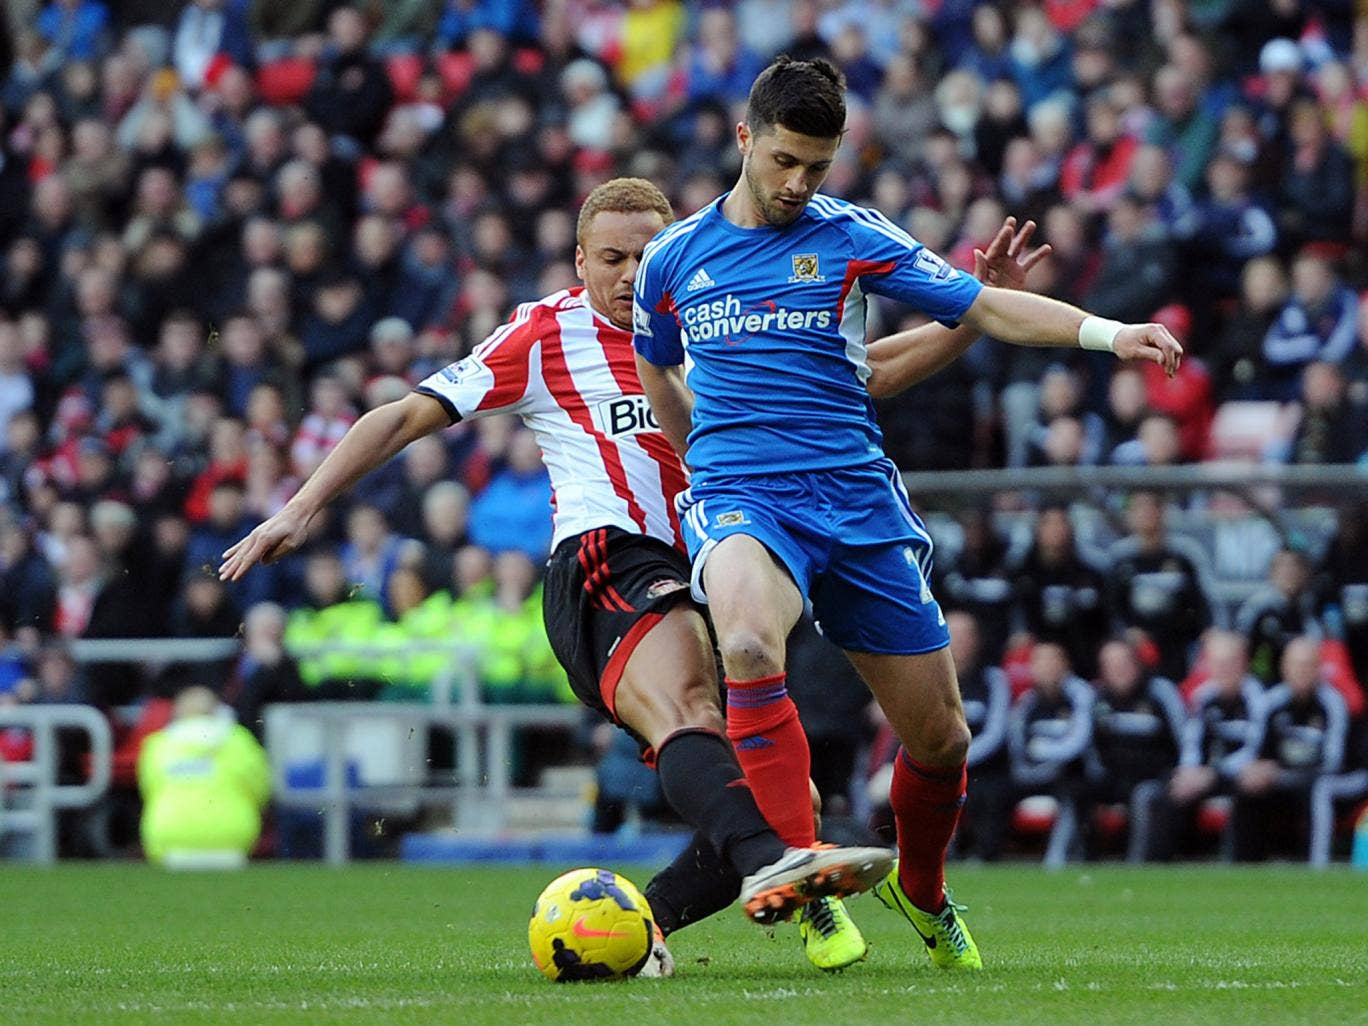 Shane Long scored his second goal in as many games for Hull in the 2-0 win over Sunderland